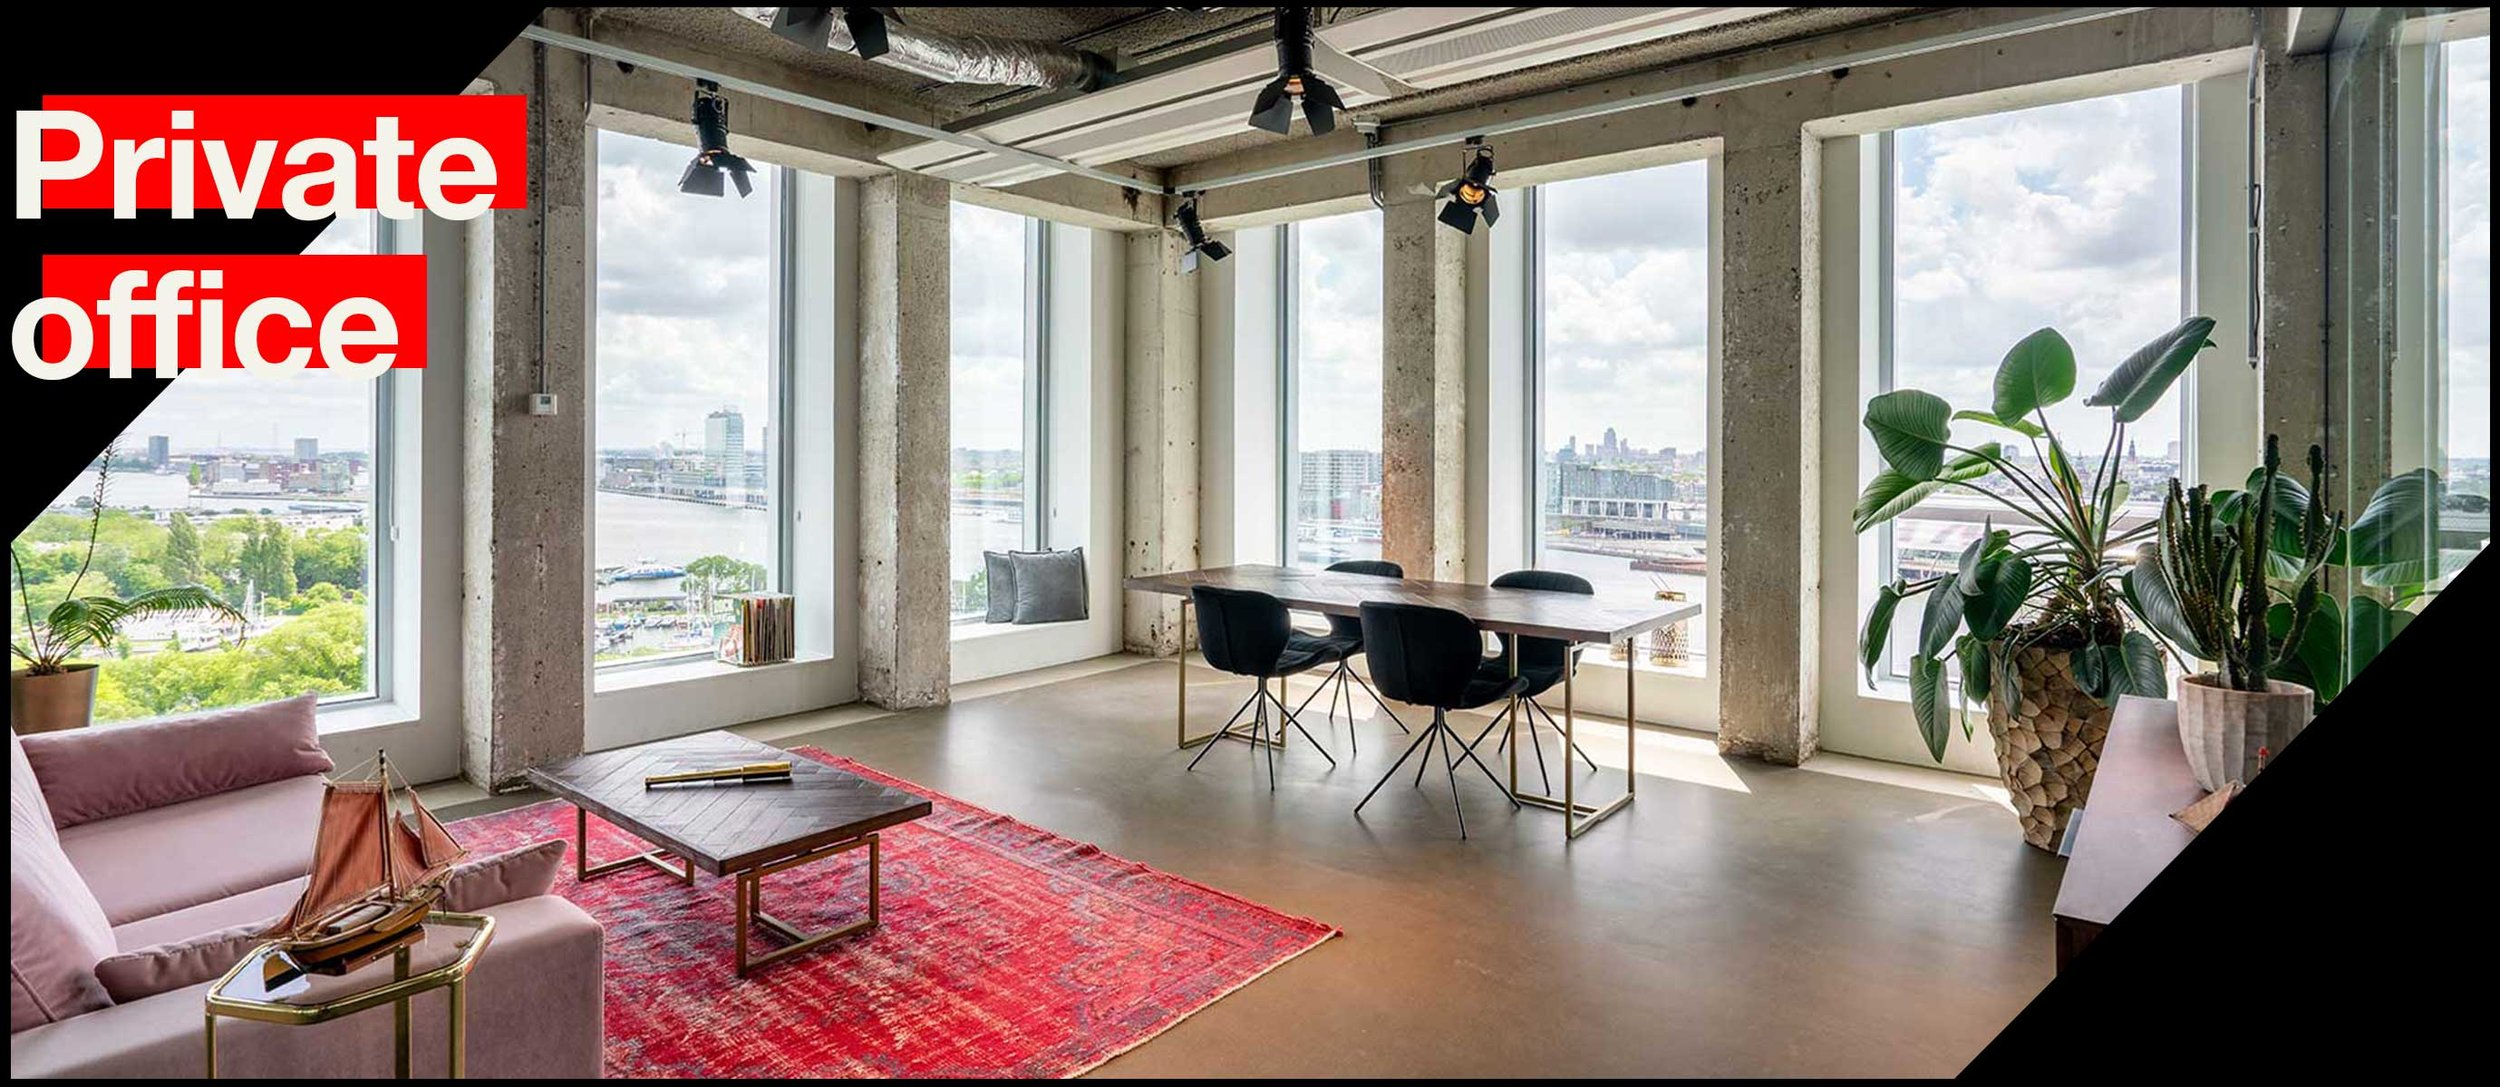 Office space for you & your colleagues. - The Private offices as part of A'DAM & Co.work are located on the 10th, 13th & 14th floor of the A'DAM Tower. These office spaces vary in size & location, & offer space for 6 to 12 people. Are you looking for a permanent office for yourself & colleagues? Then a Private office might be something for you. The costs for this membership start at € 2,500 per month (excluding VAT).